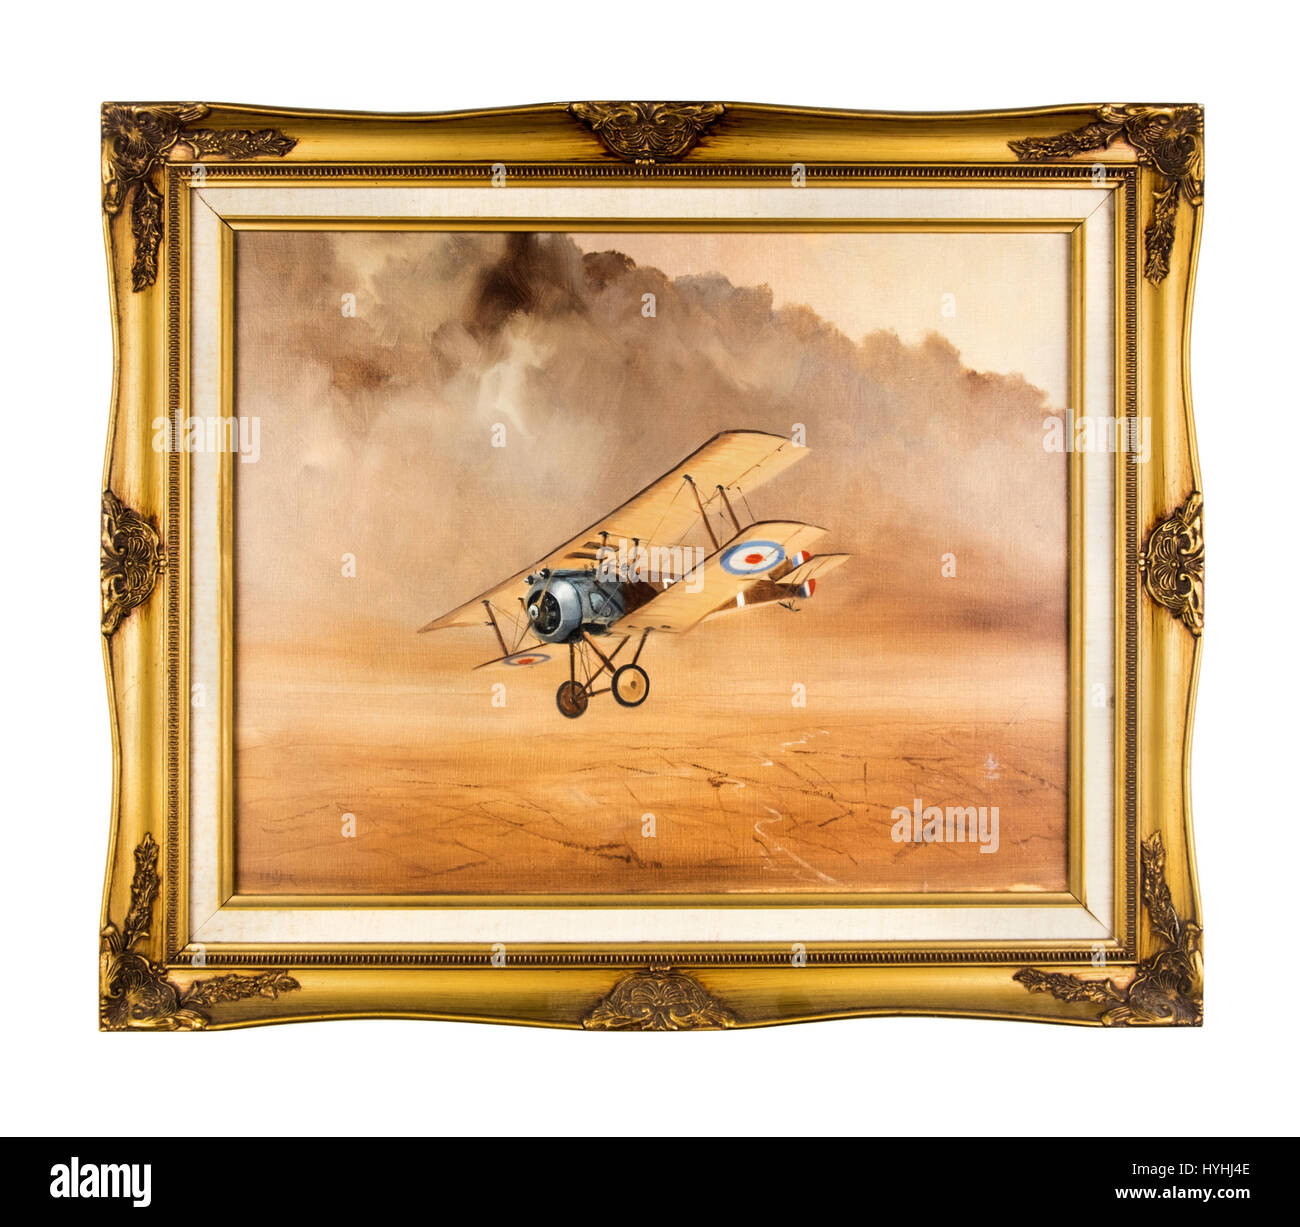 Oil on canvas by Brian Palmer in gilt frame, showing a WW1 British Royal Flying Corps Sopwith 'Pup' (Scout) biplane Stock Photo